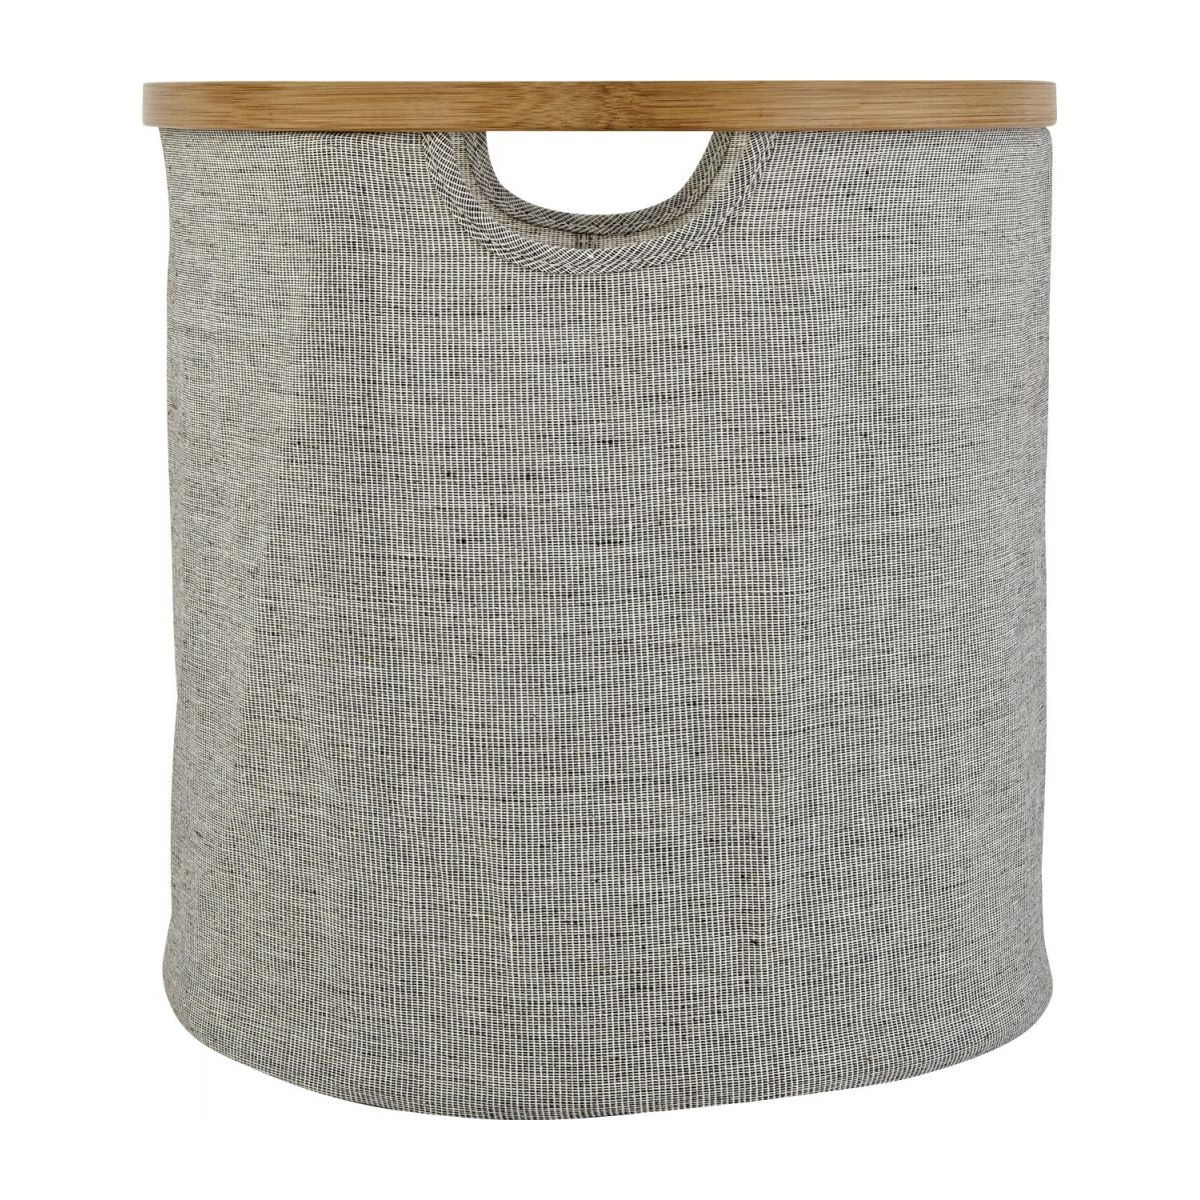 small round laundry basket n°3